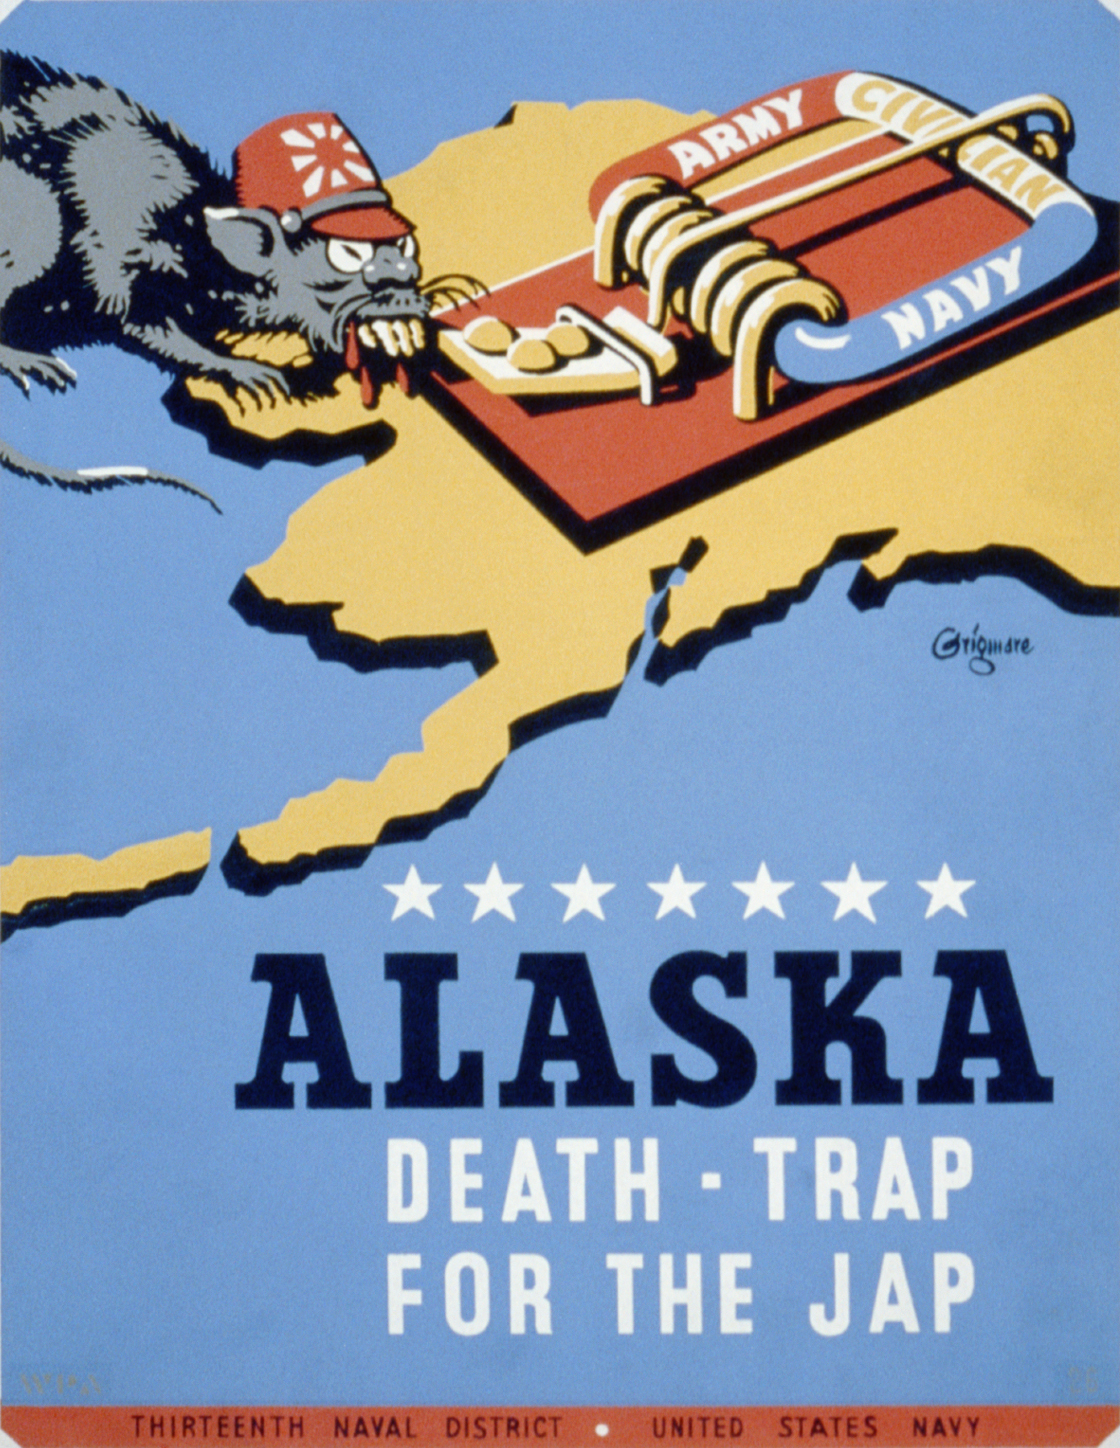 A U.S. government propaganda poster highlighting the Aleutian conflict